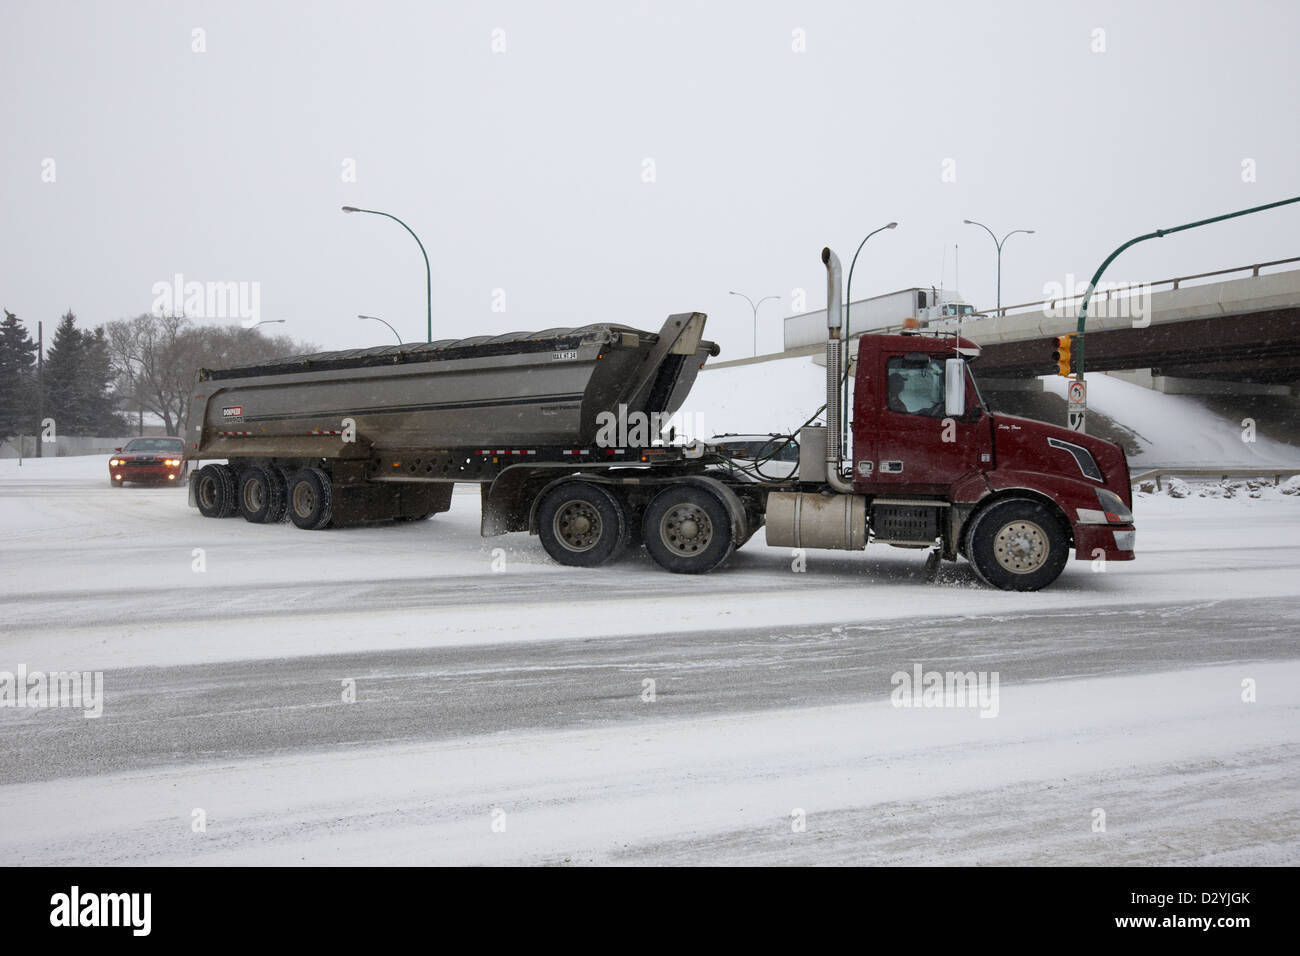 Tow Truck Saskatoon >> Large Freight Truck Towing Load On Frozen Road In Falling